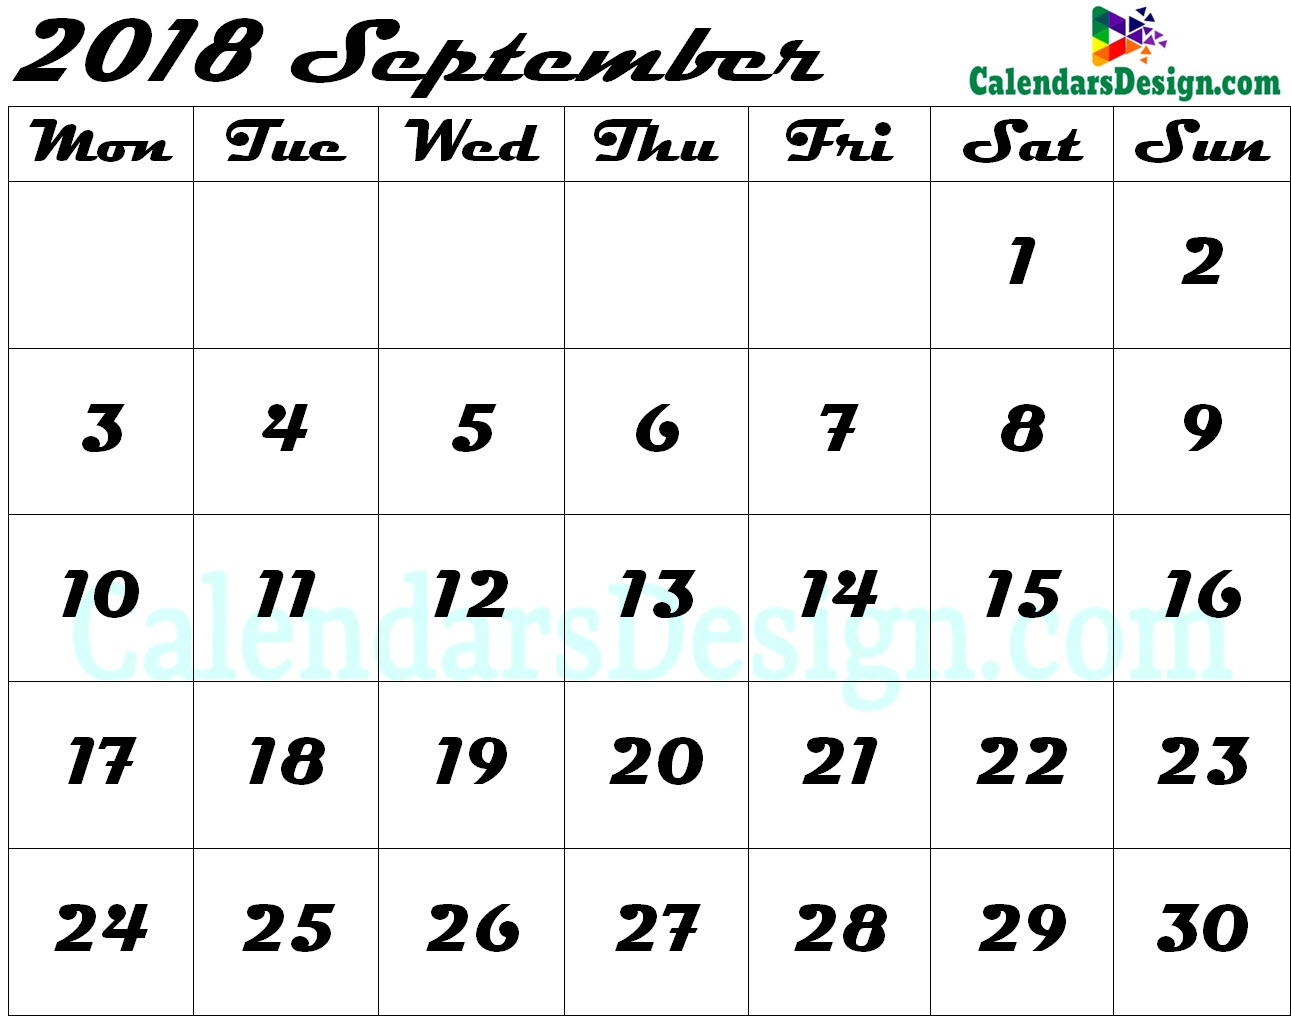 Editable September 2018 Calendar Blank Template